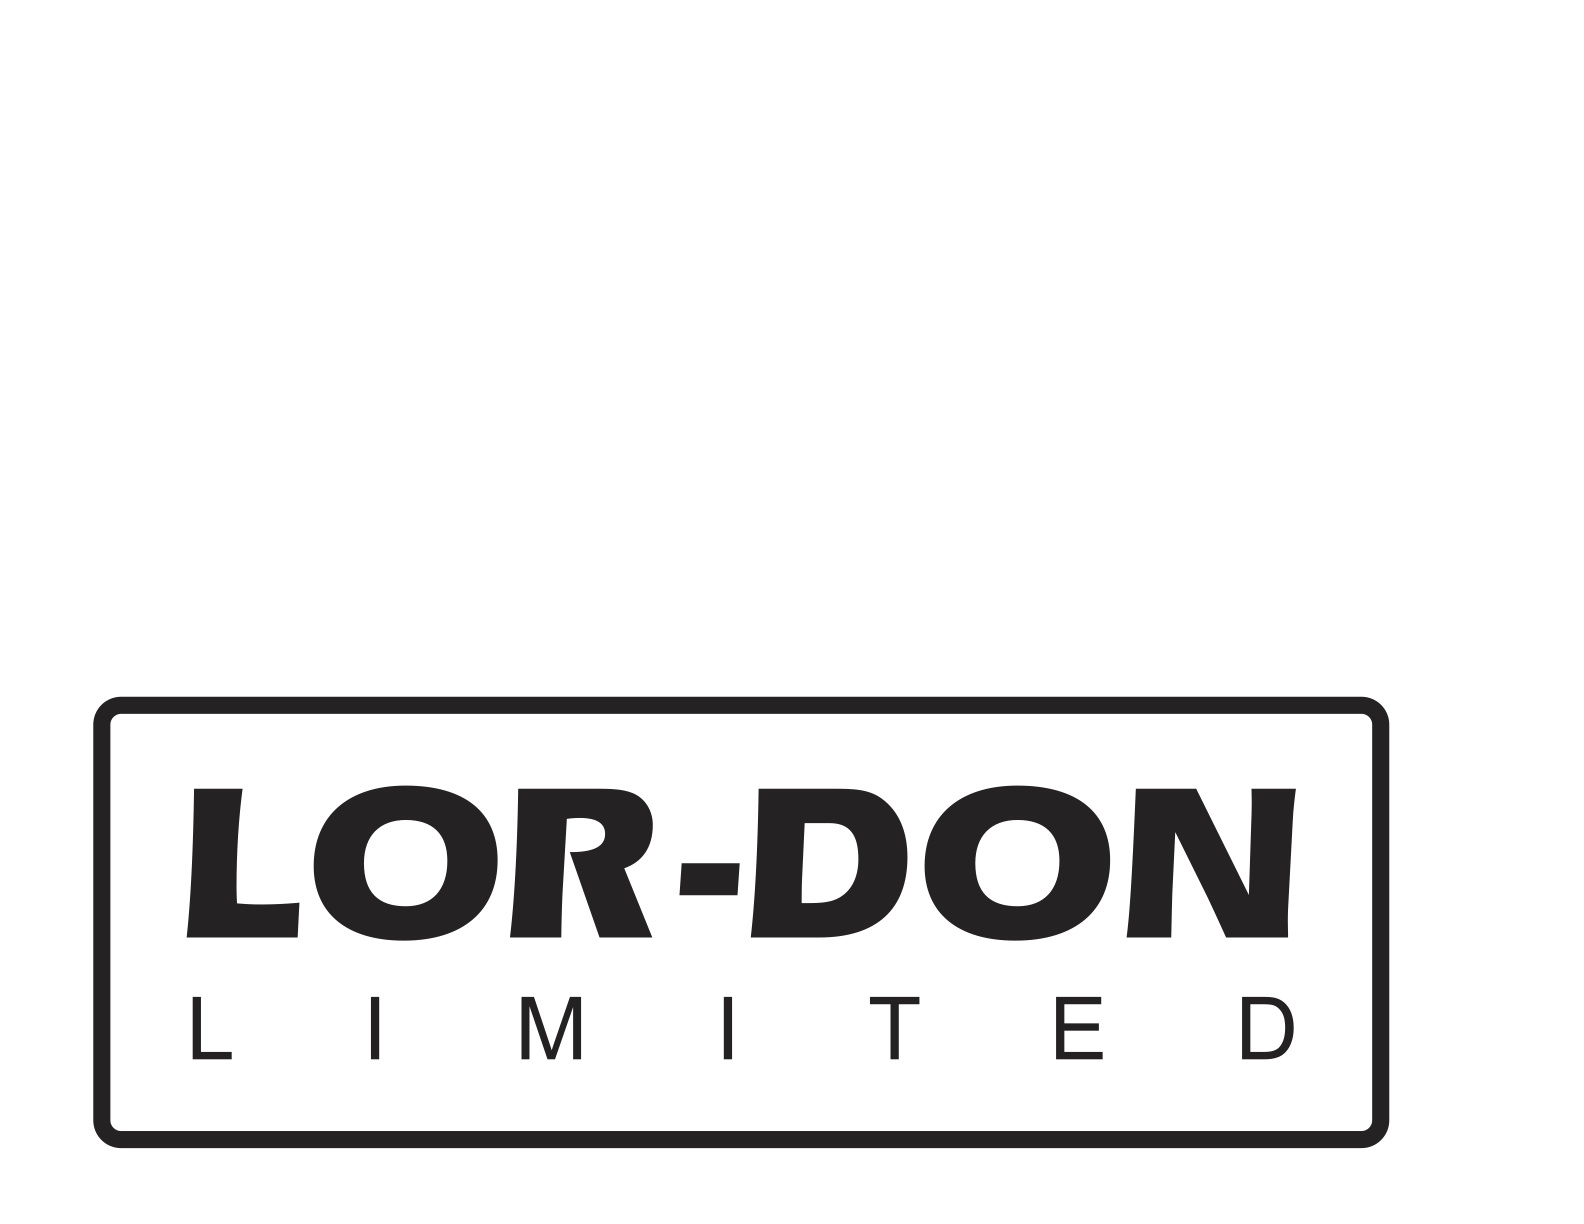 Lordon_limited